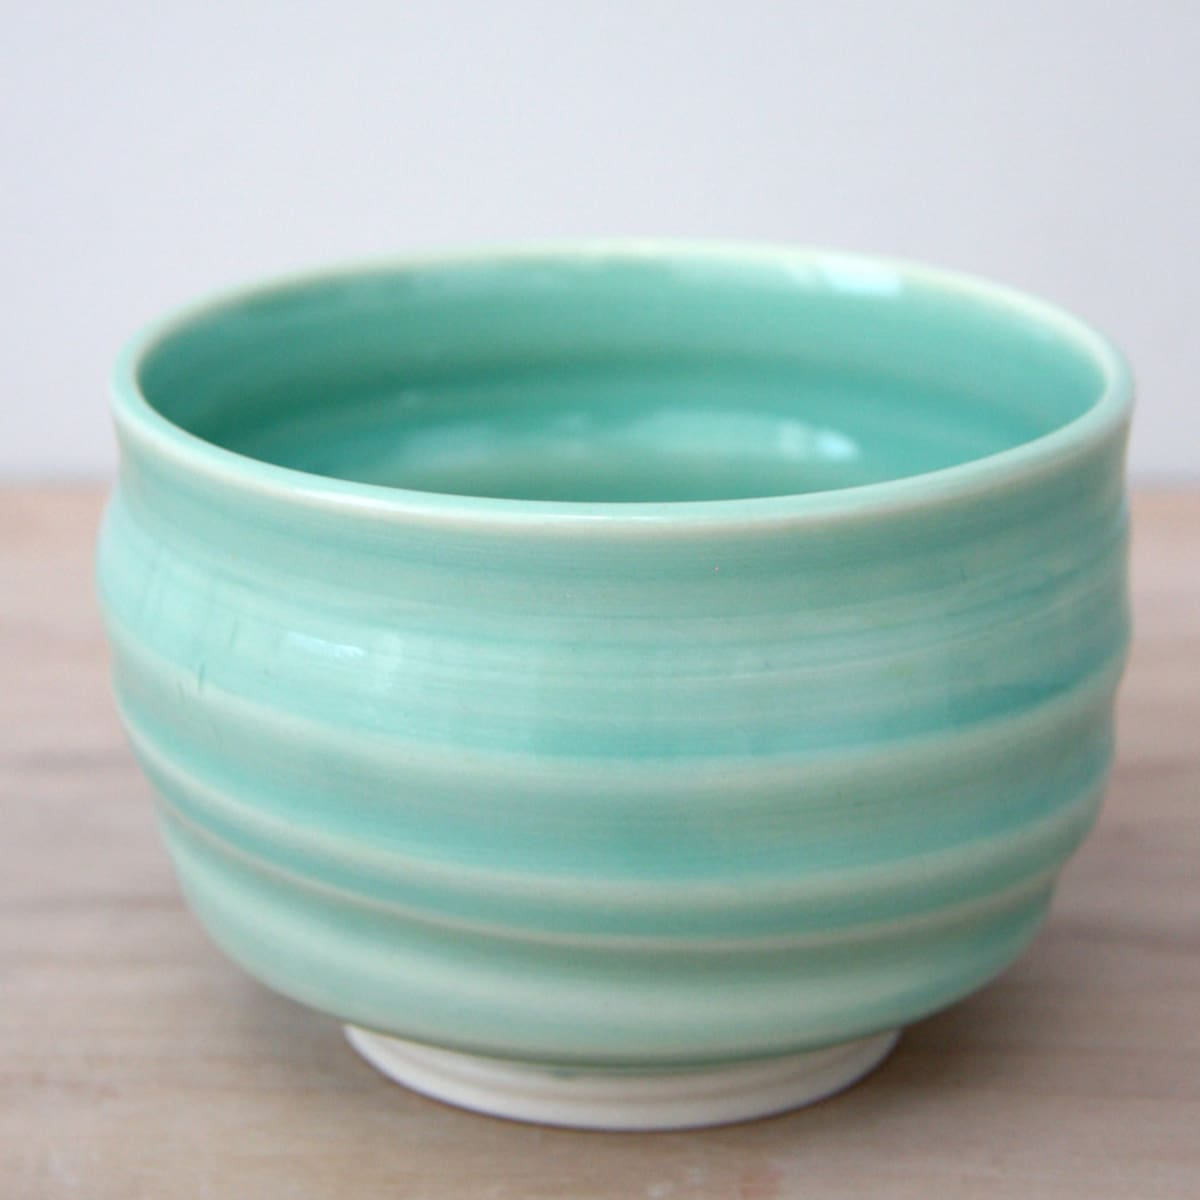 10 Handmade Bowls on Etsy for $25 or Less: gallery image 9